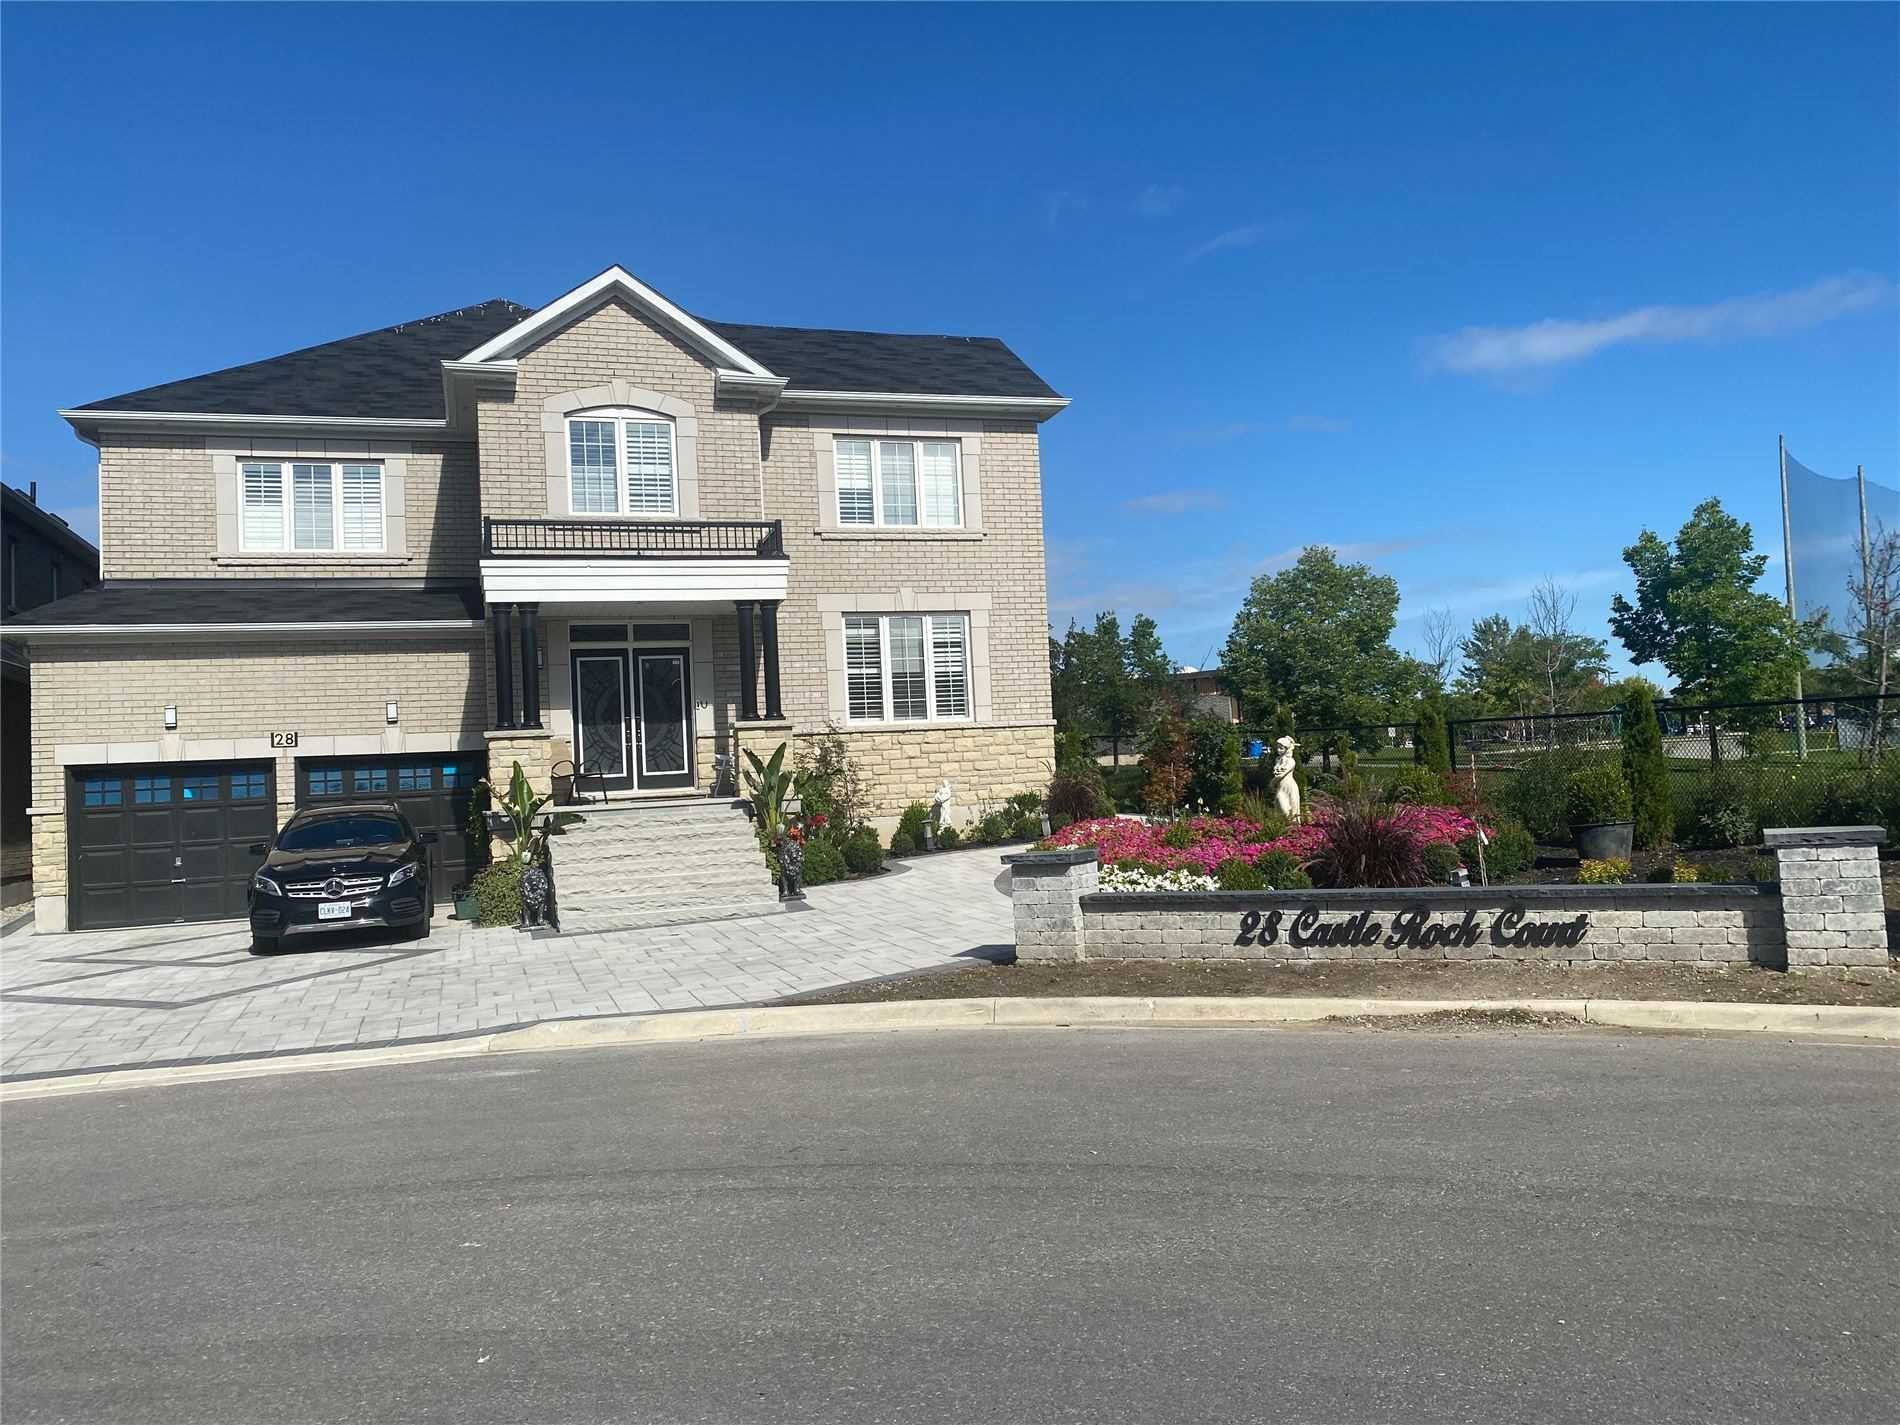 Detached house For Lease In Markham - 28 Castle Rock Crt, Markham, Ontario, Canada L3S0C8 , 1 Bedroom Bedrooms, ,2 BathroomsBathrooms,Detached,For Lease,Bsmt,Castle Rock